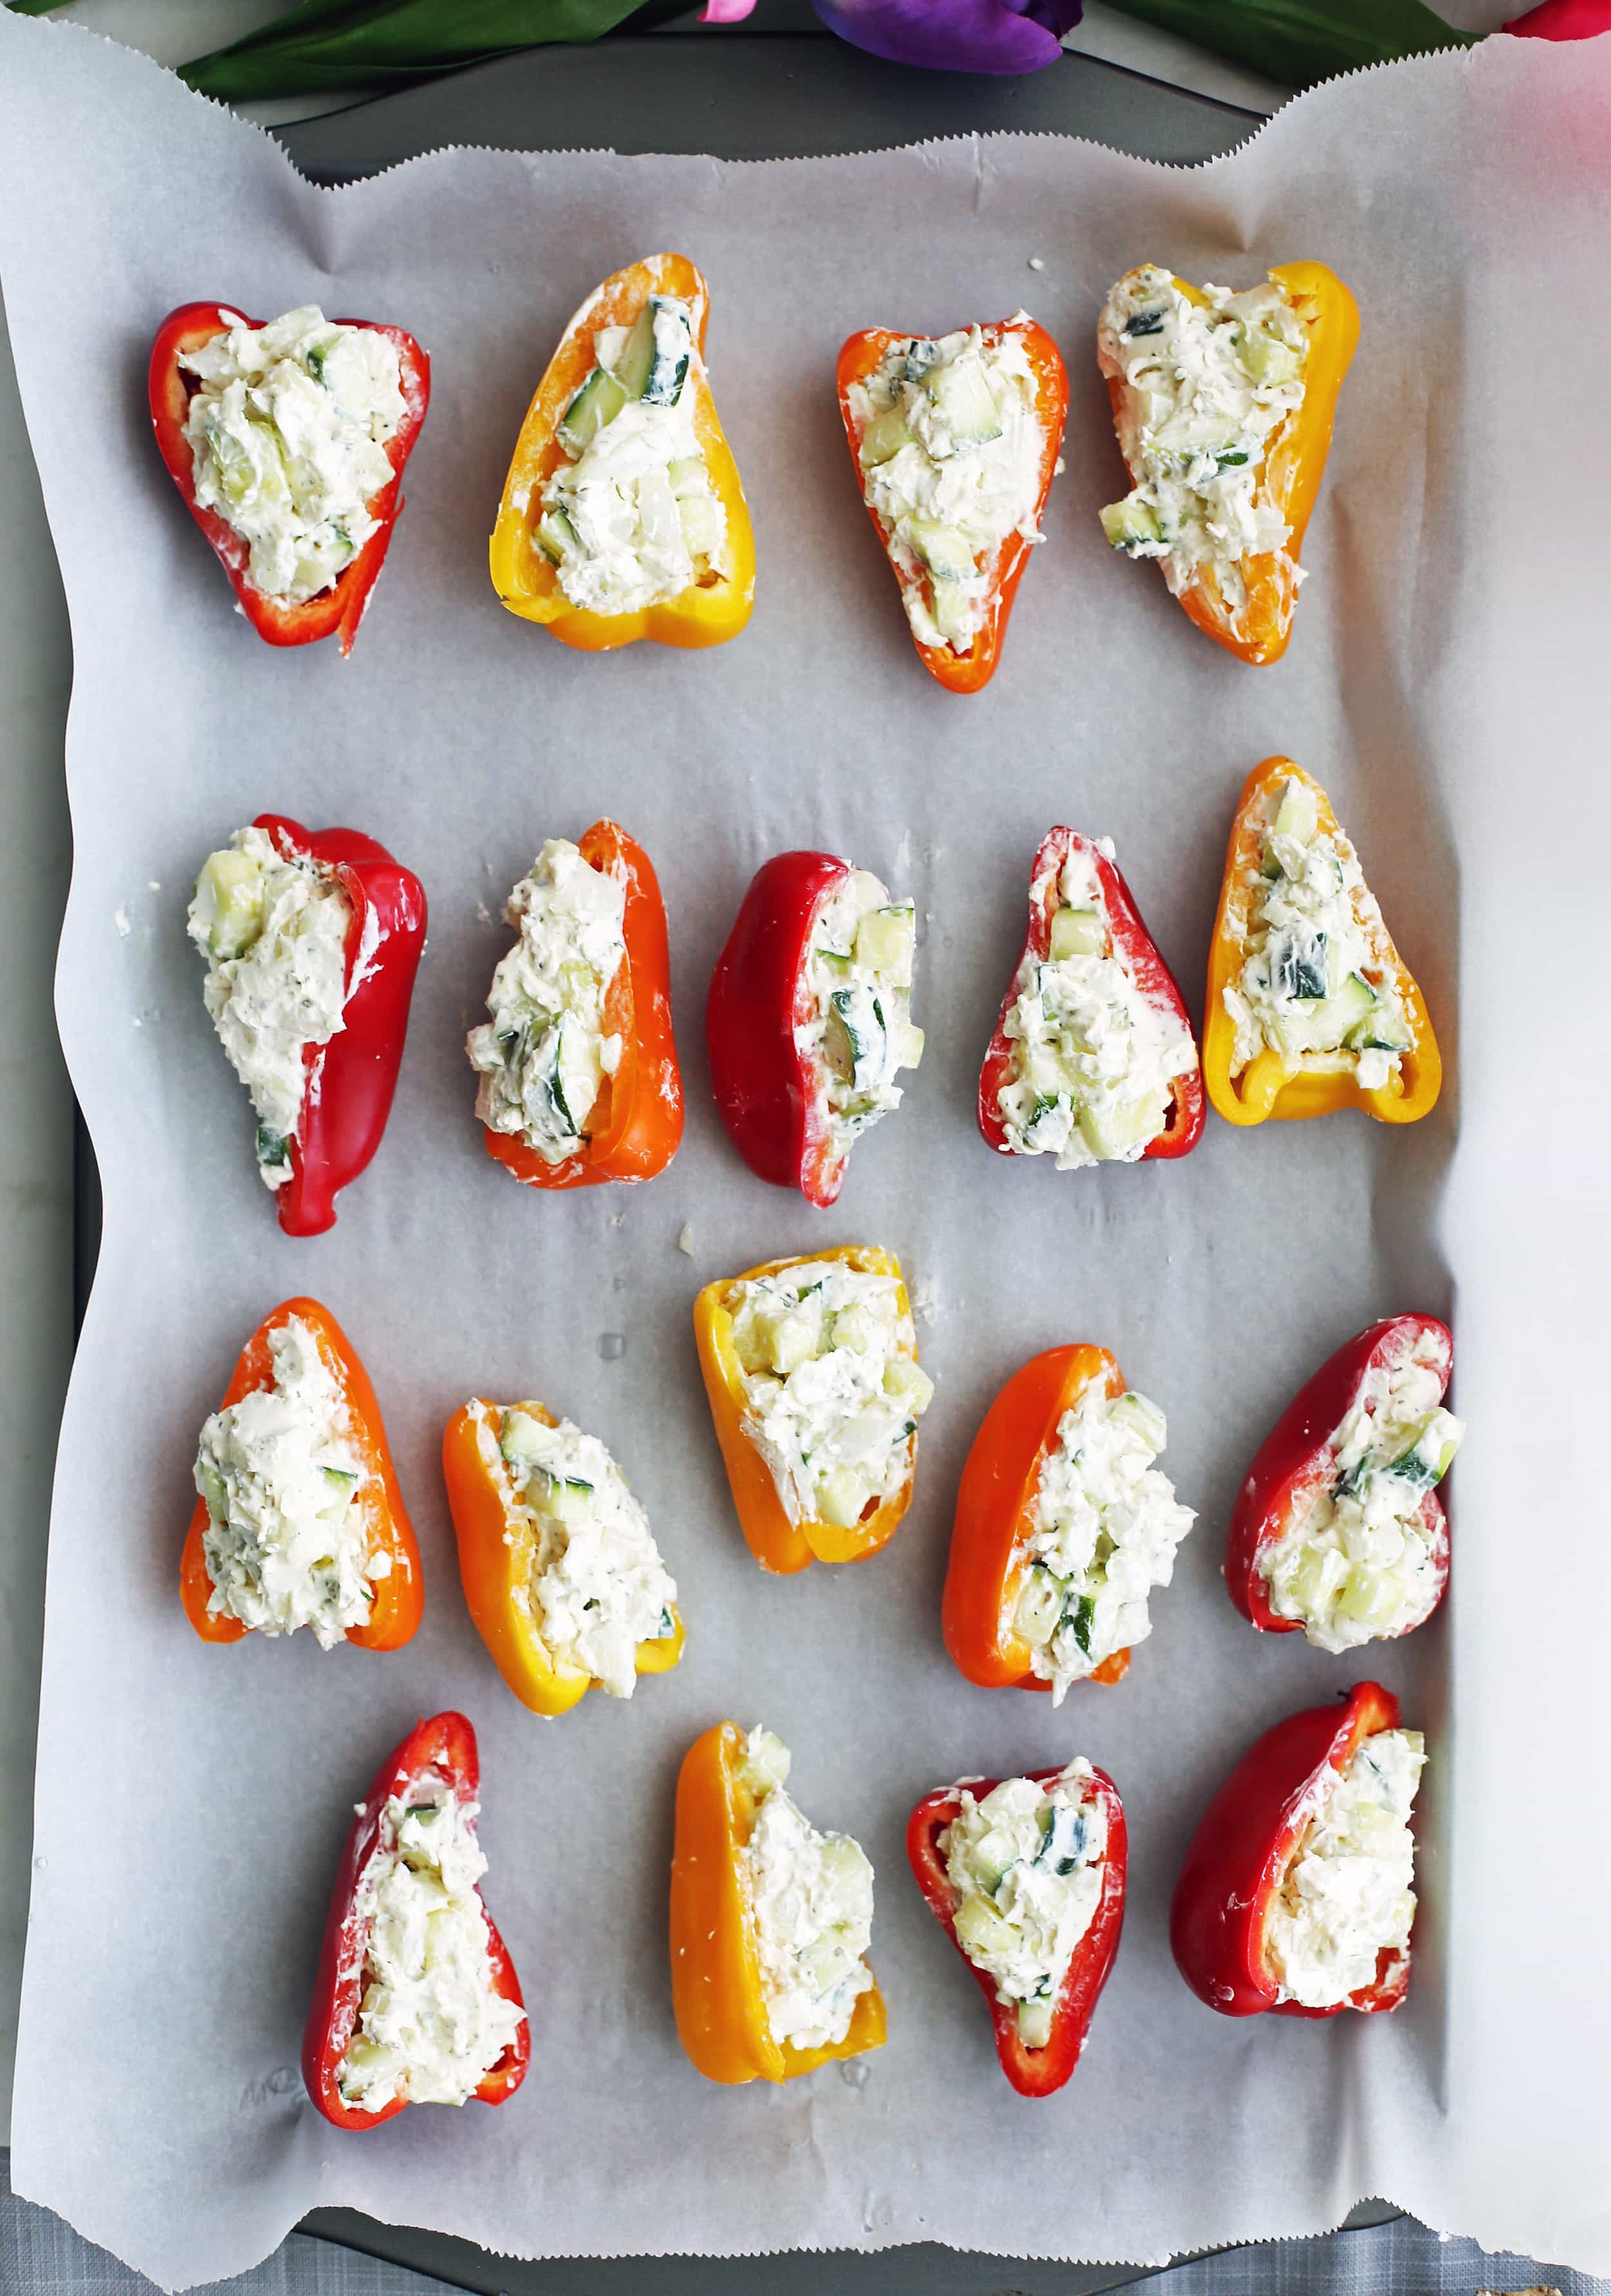 Zucchini and cream cheese mini stuffed peppers ready to be baked on a large baking sheet.